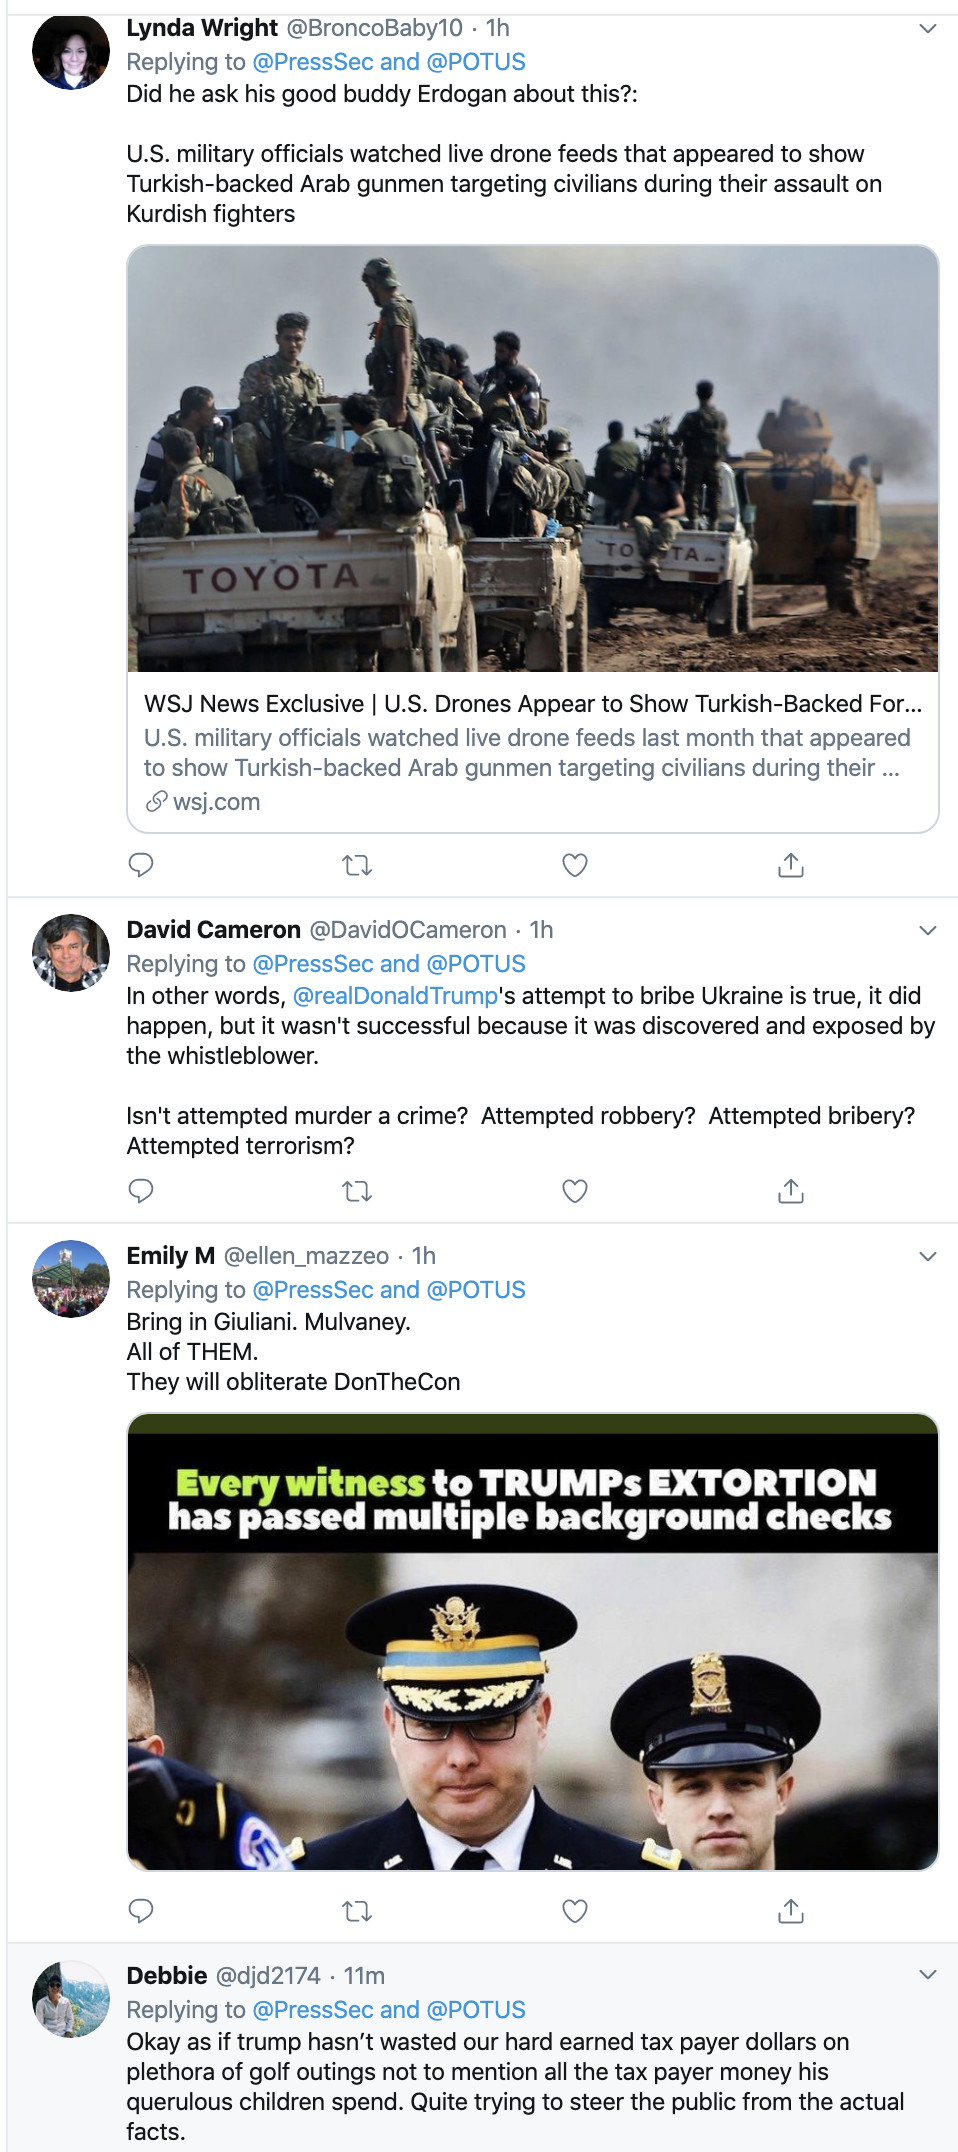 Screen-Shot-2019-11-13-at-3.24.48-PM Trump Flips Out During WH Meeting With Turkish Leader Corruption Crime Donald Trump Election 2020 Featured Foreign Policy Impeachment Investigation Military Politics Russia Terrorism Top Stories Videos War